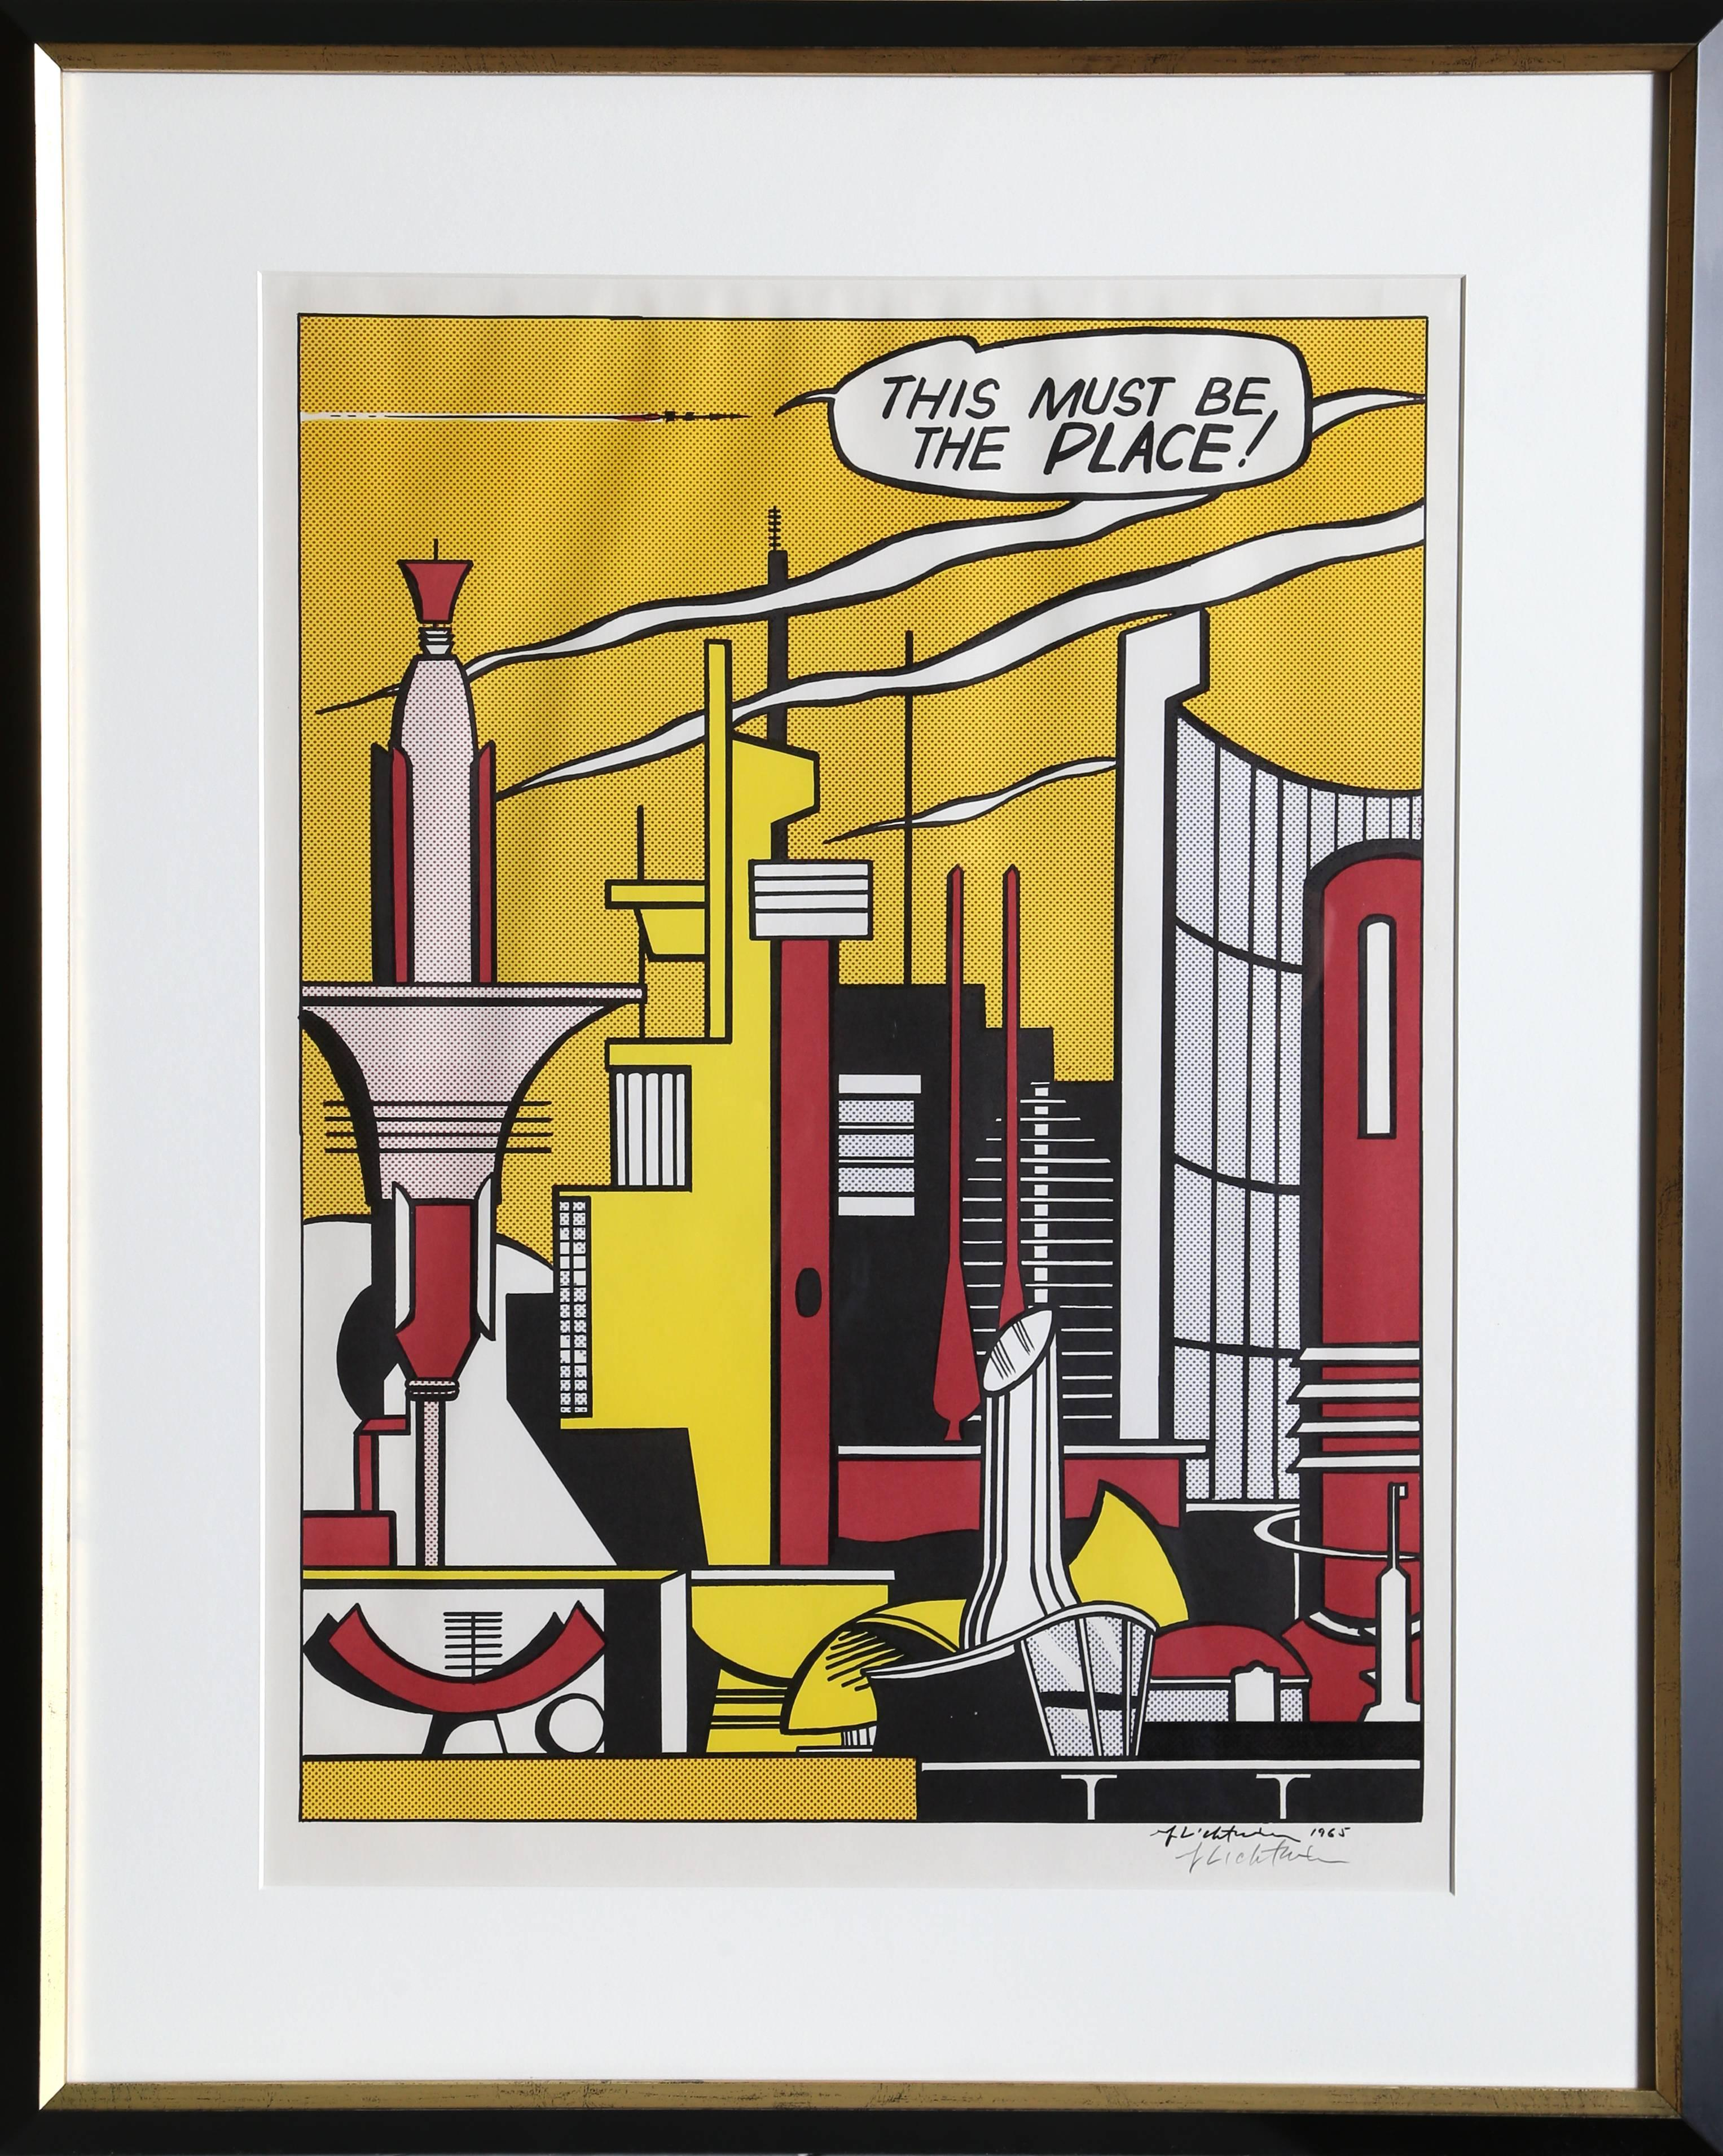 This Must Be the Place (C. III.20), by Roy Lichtenstein 1965